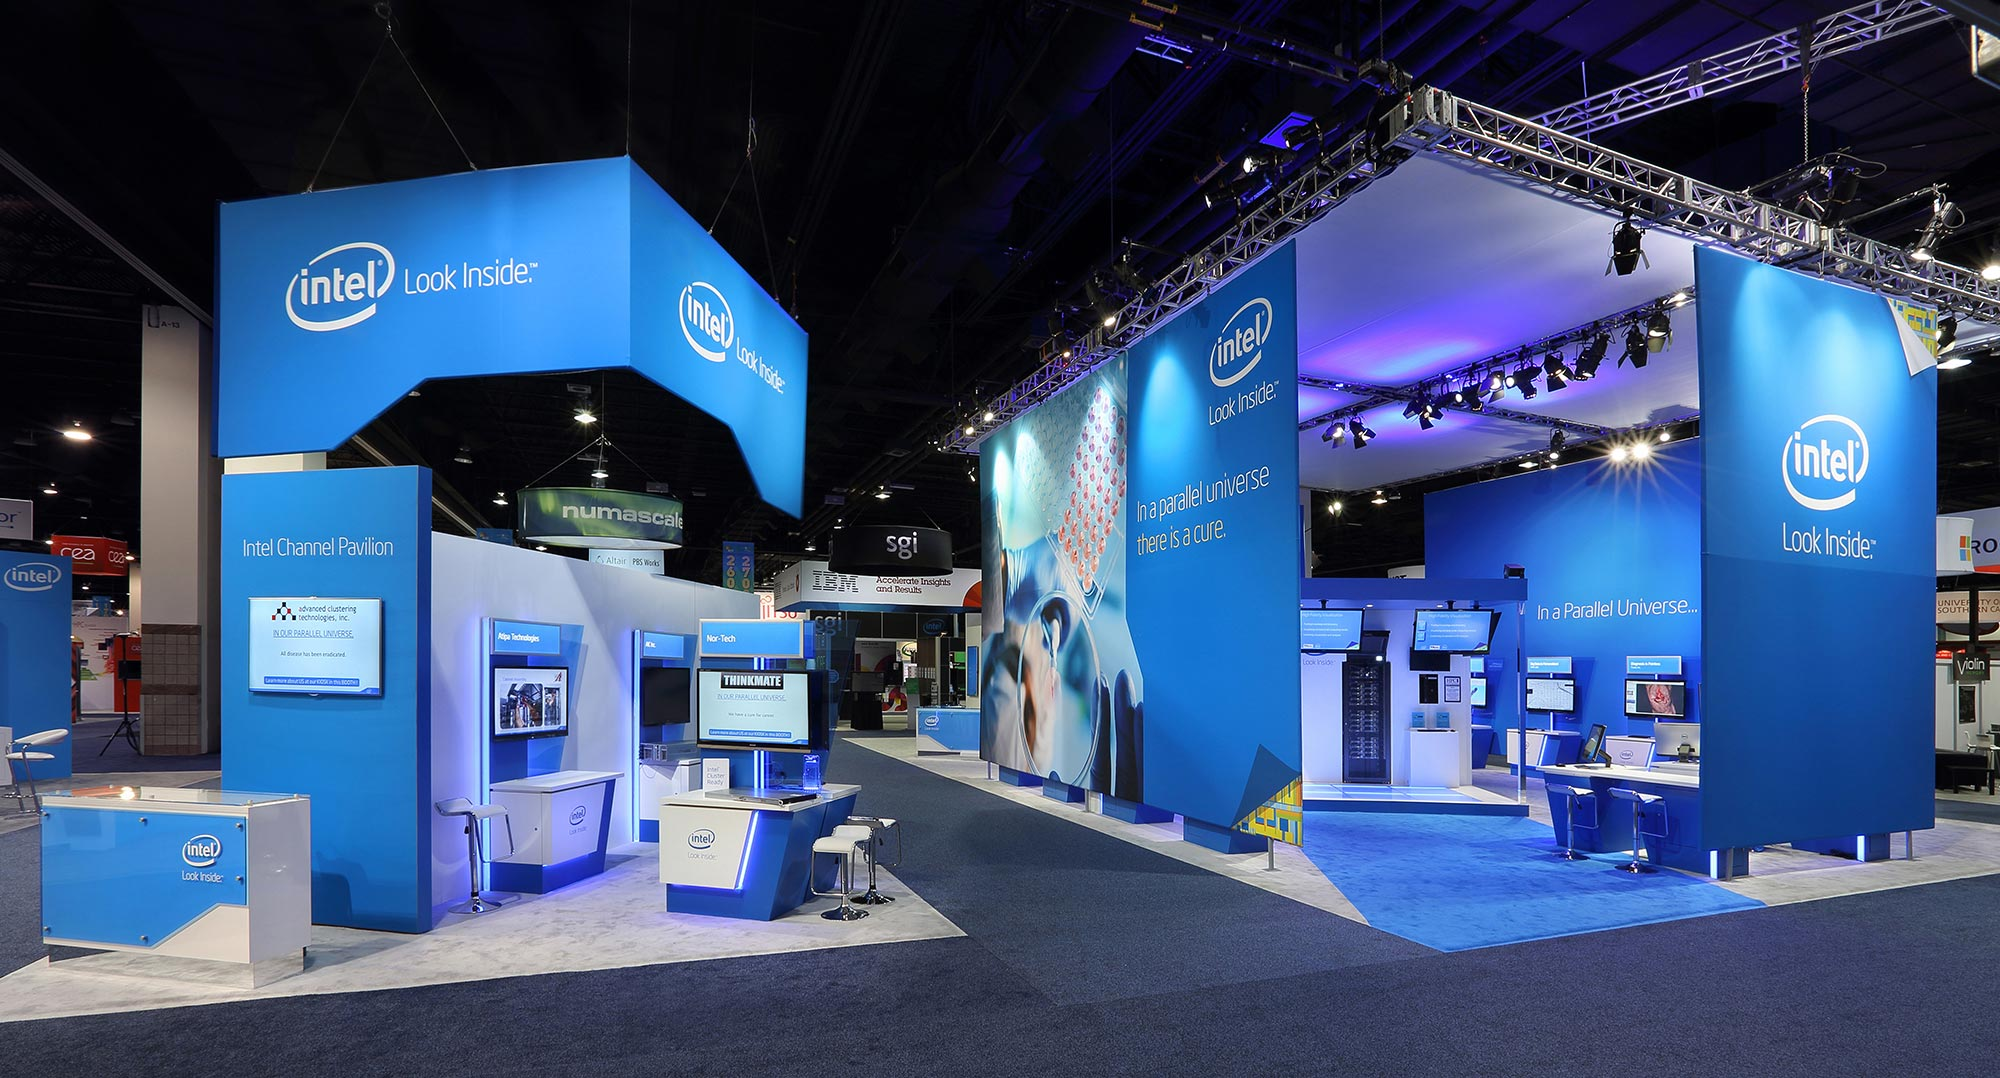 Intel Stand graphics and motion graphics